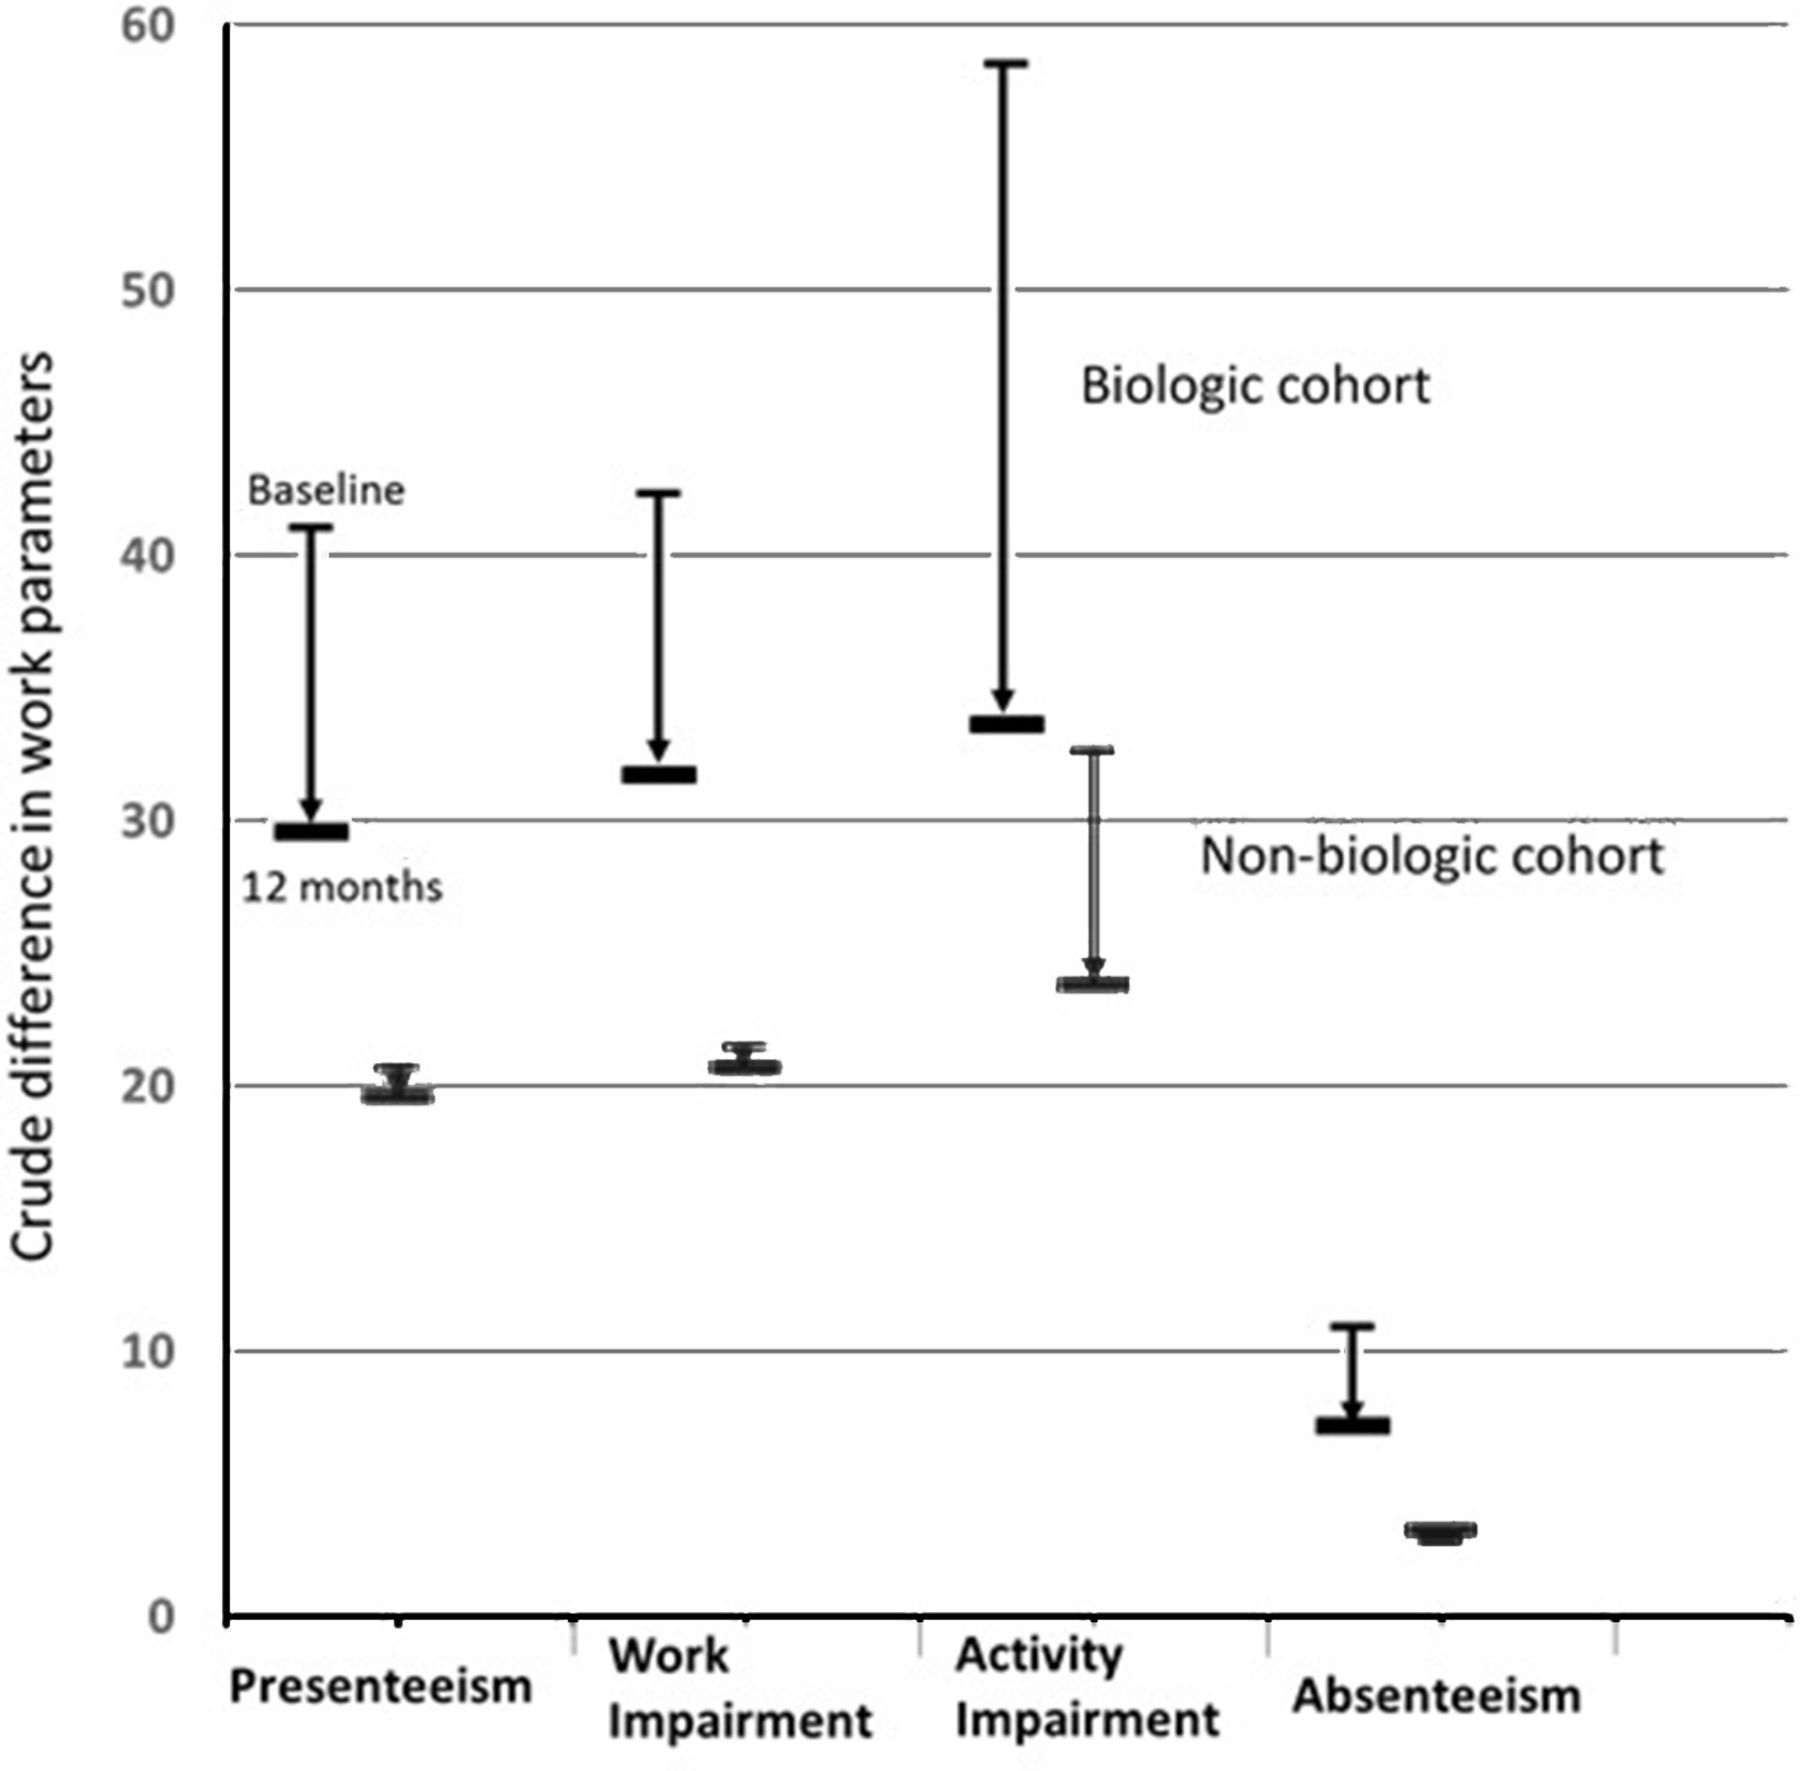 Impact of biological therapy on work outcomes in patients